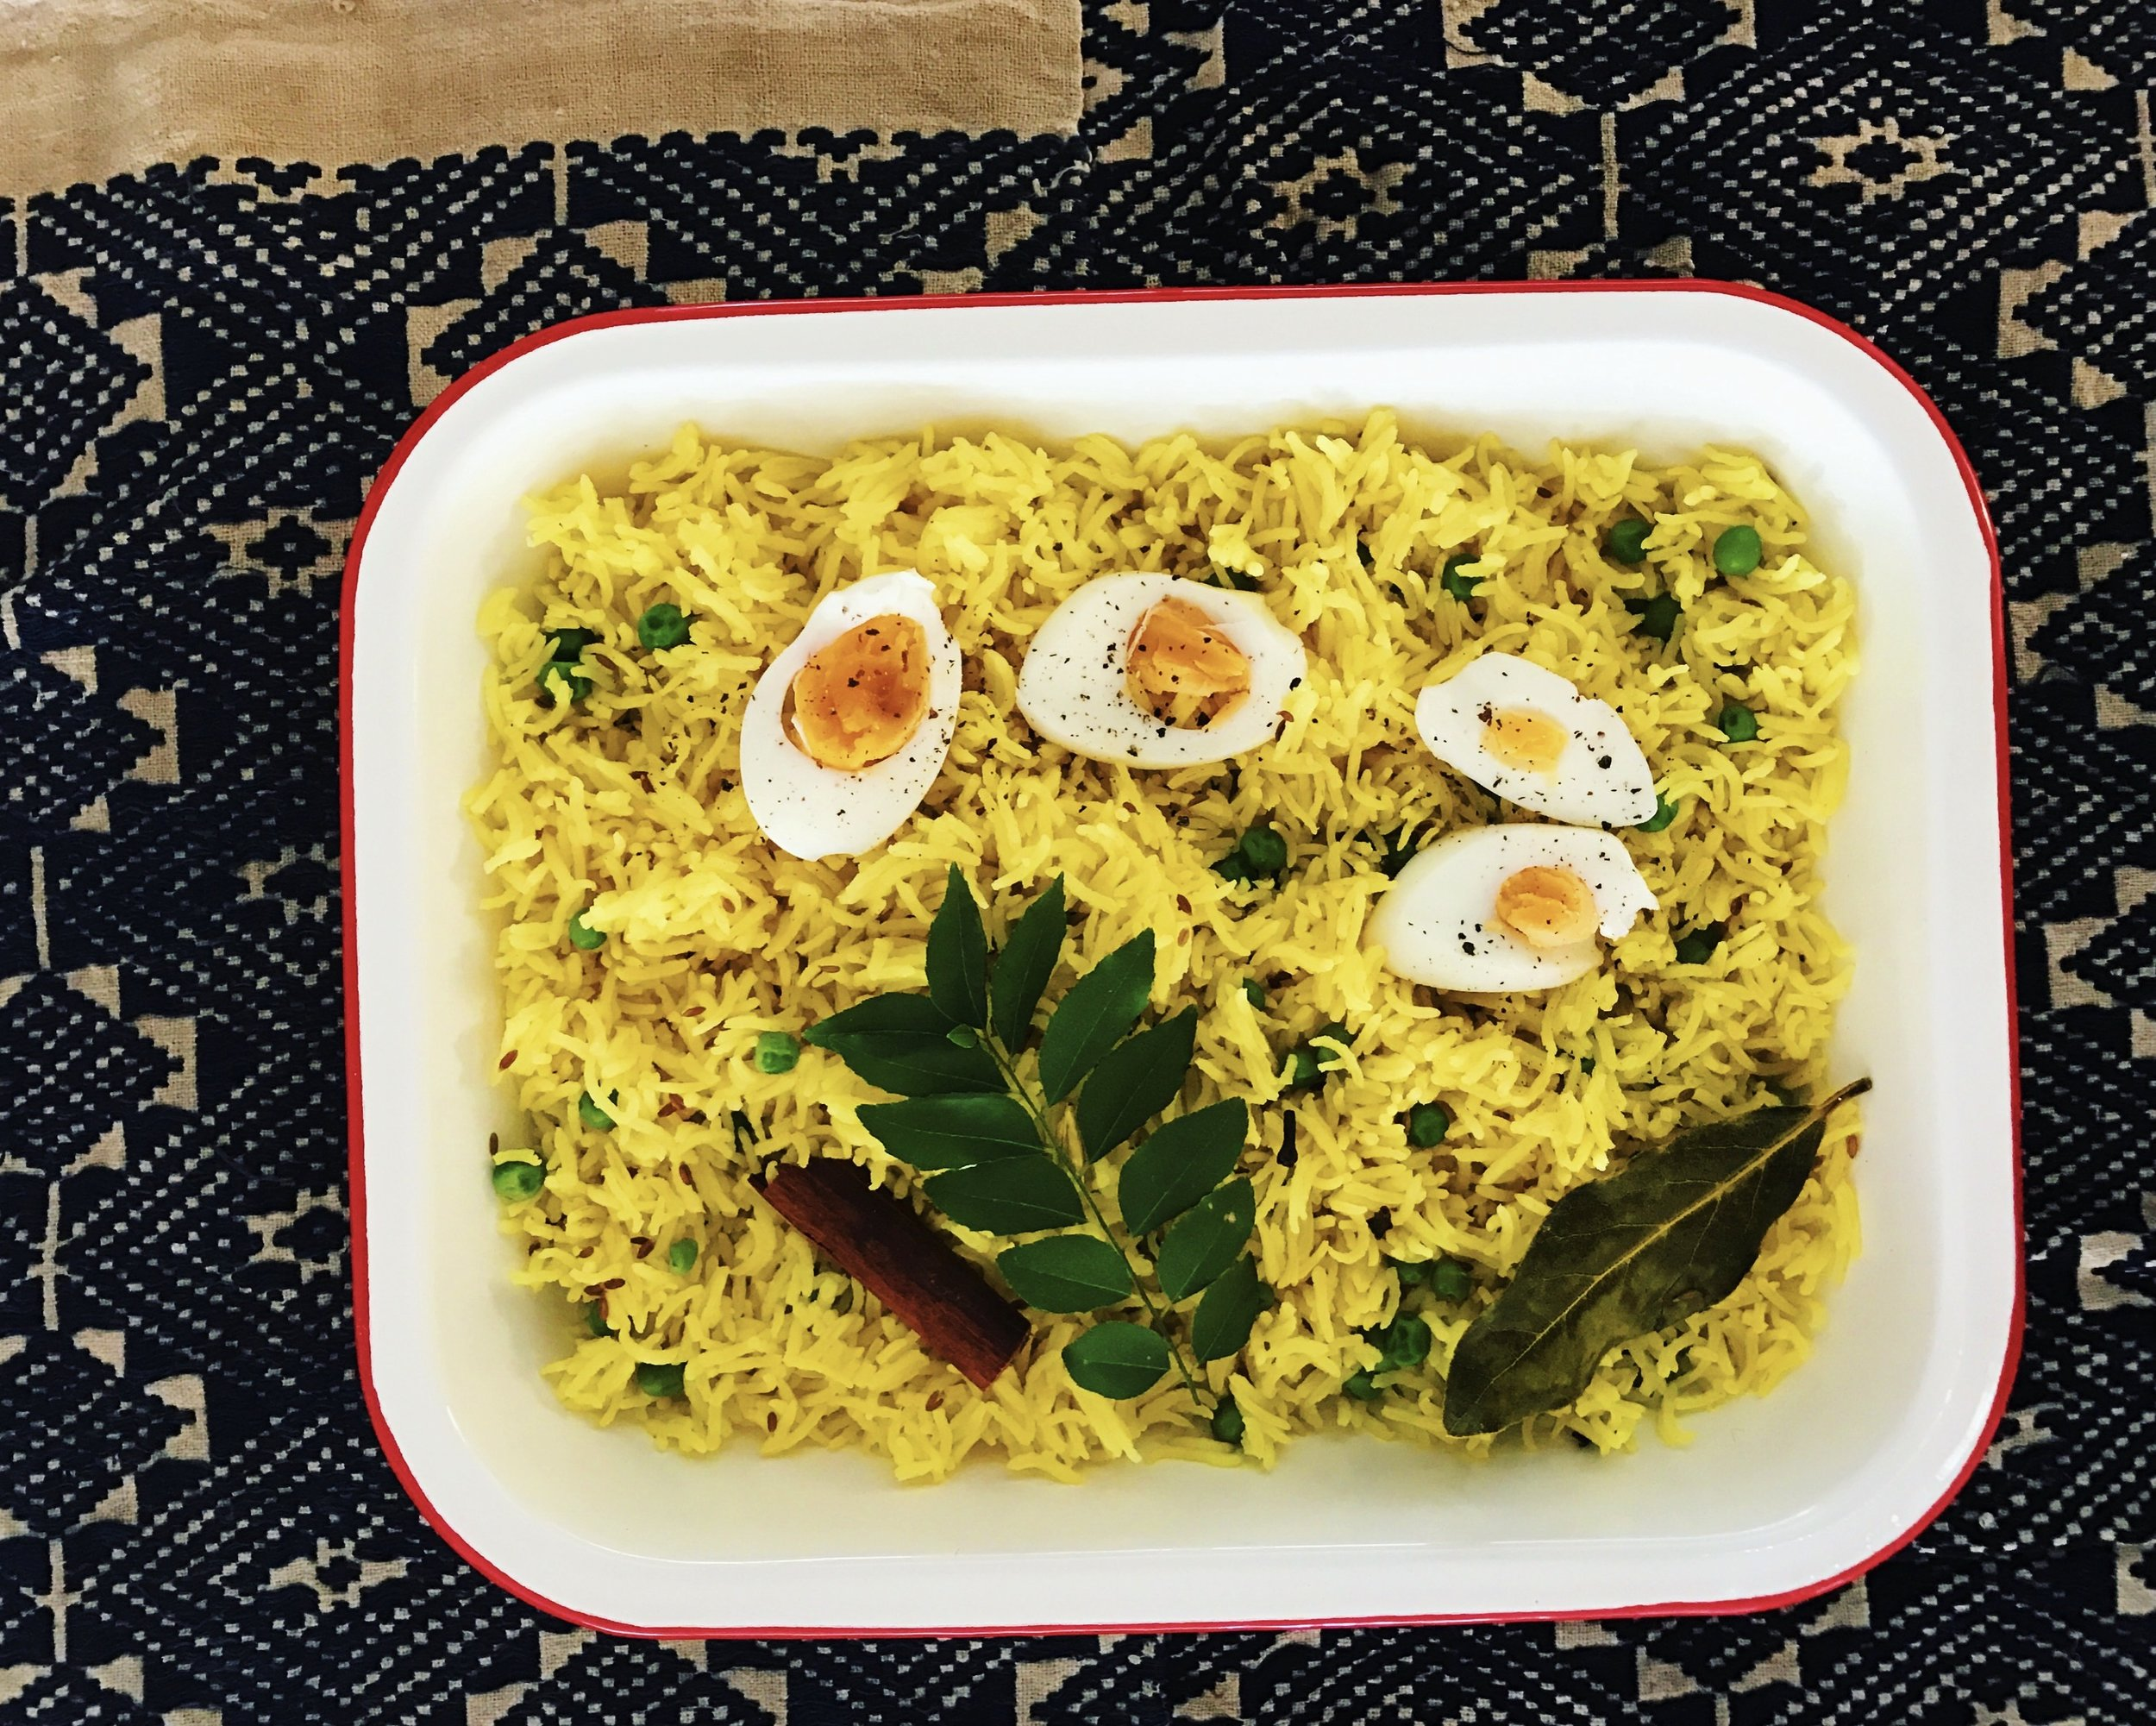 Pilau rice with turmeric and peas